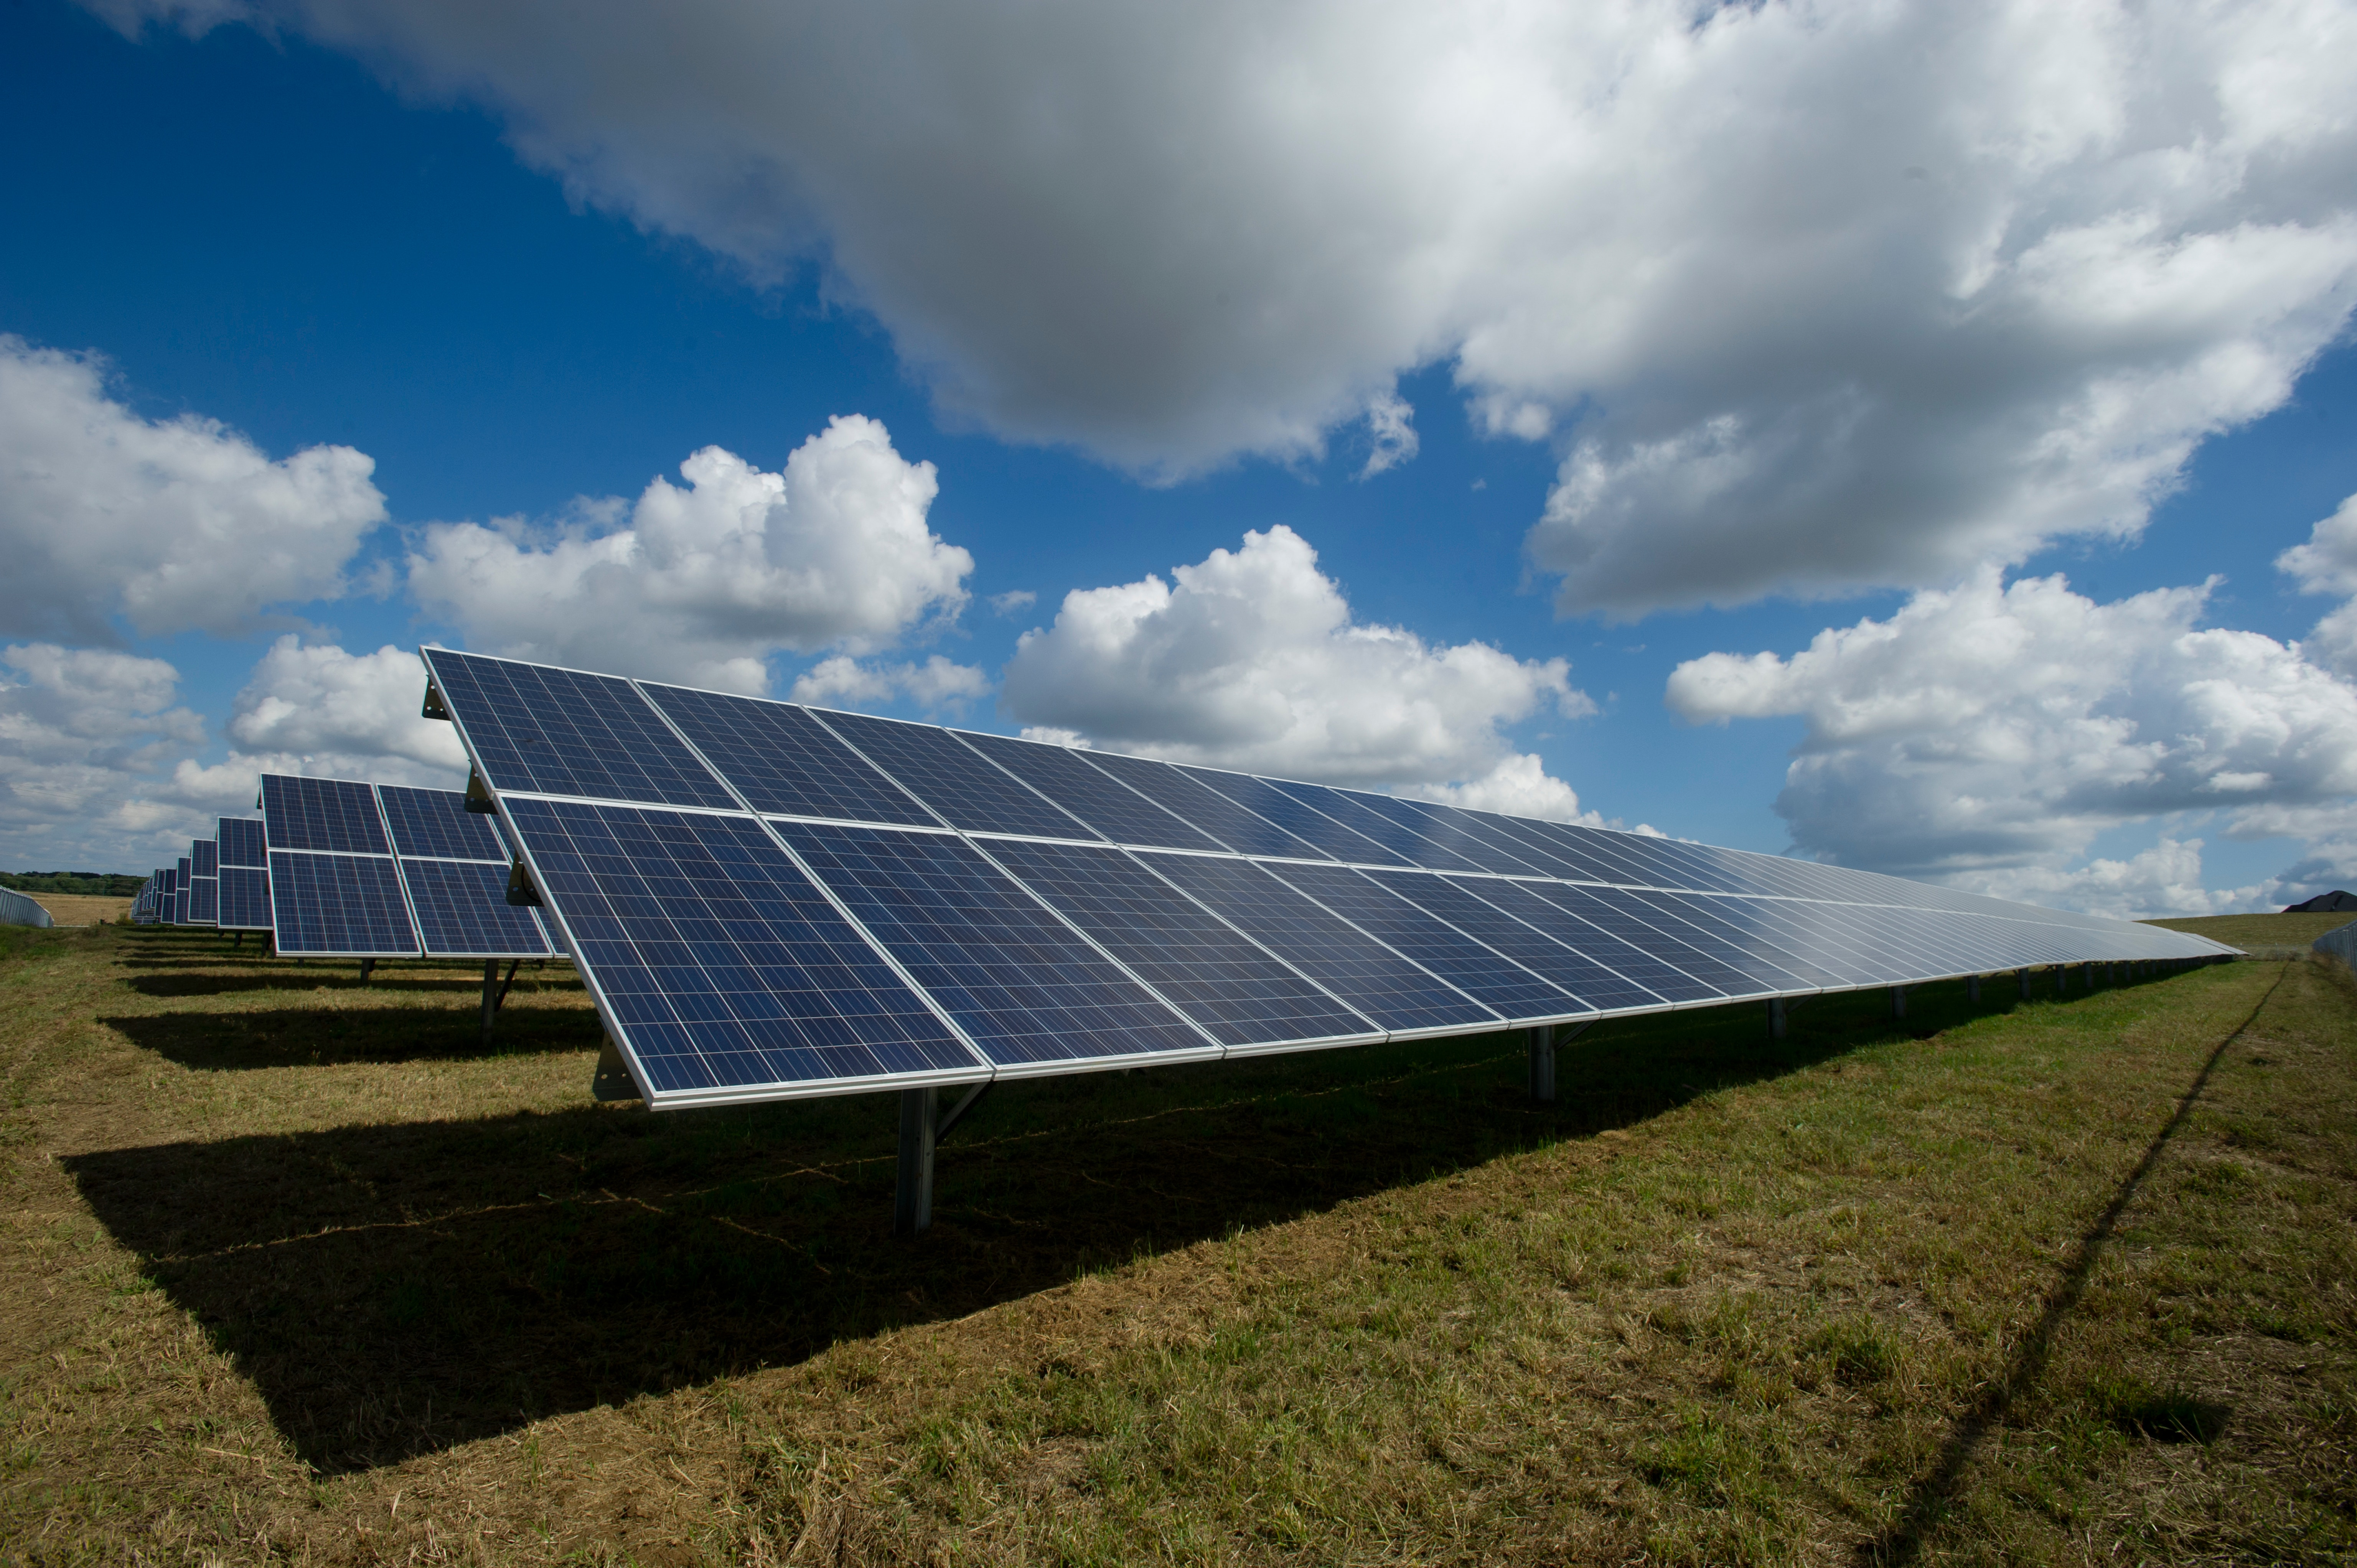 Efficiency Analysis: Condition Assessment and Forecast of Photovoltaic Electricity Generation